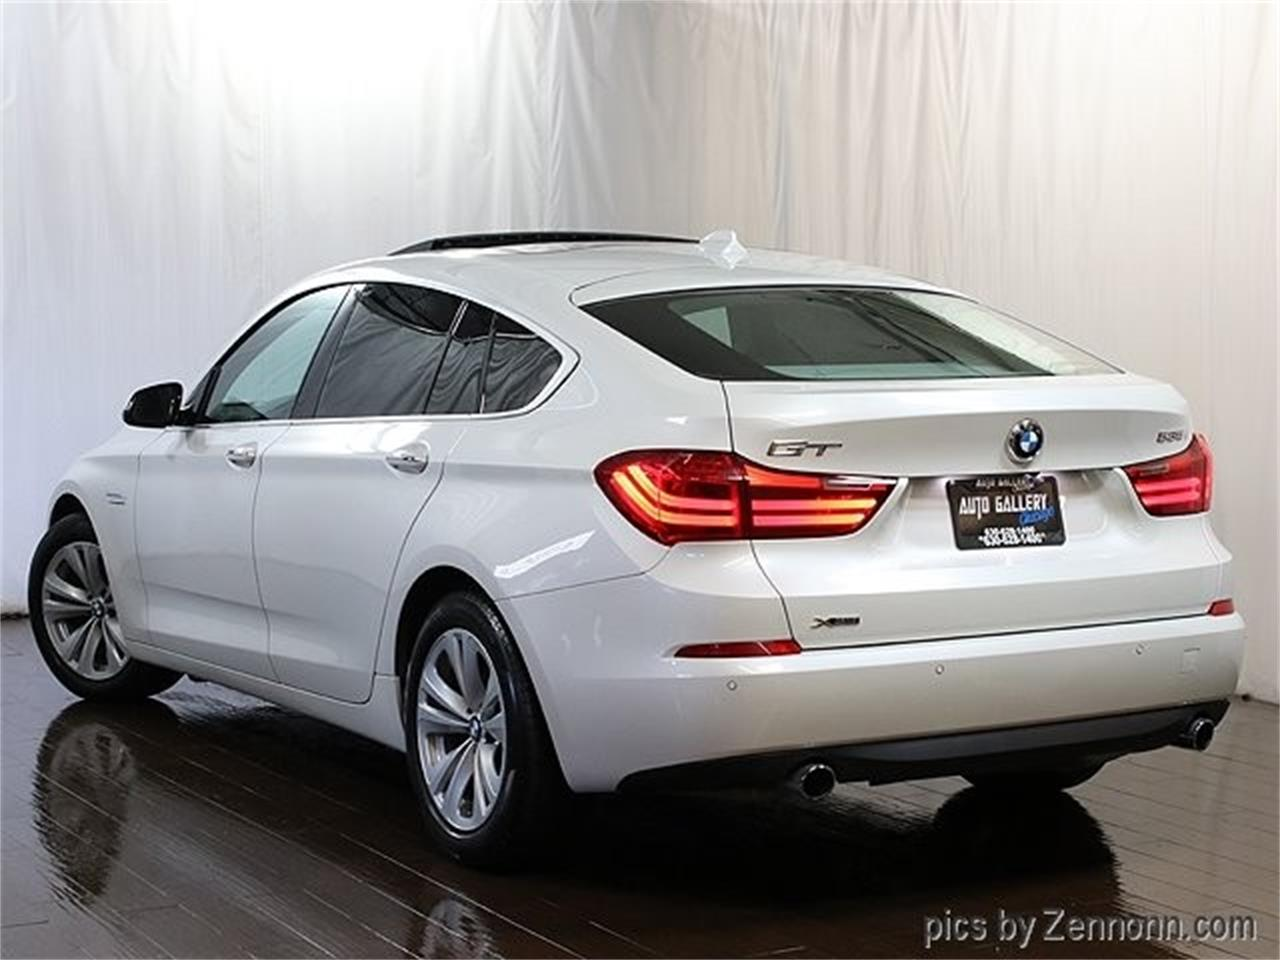 Large Picture of '15 BMW 5 Series - $19,990.00 Offered by Auto Gallery Chicago - Q857